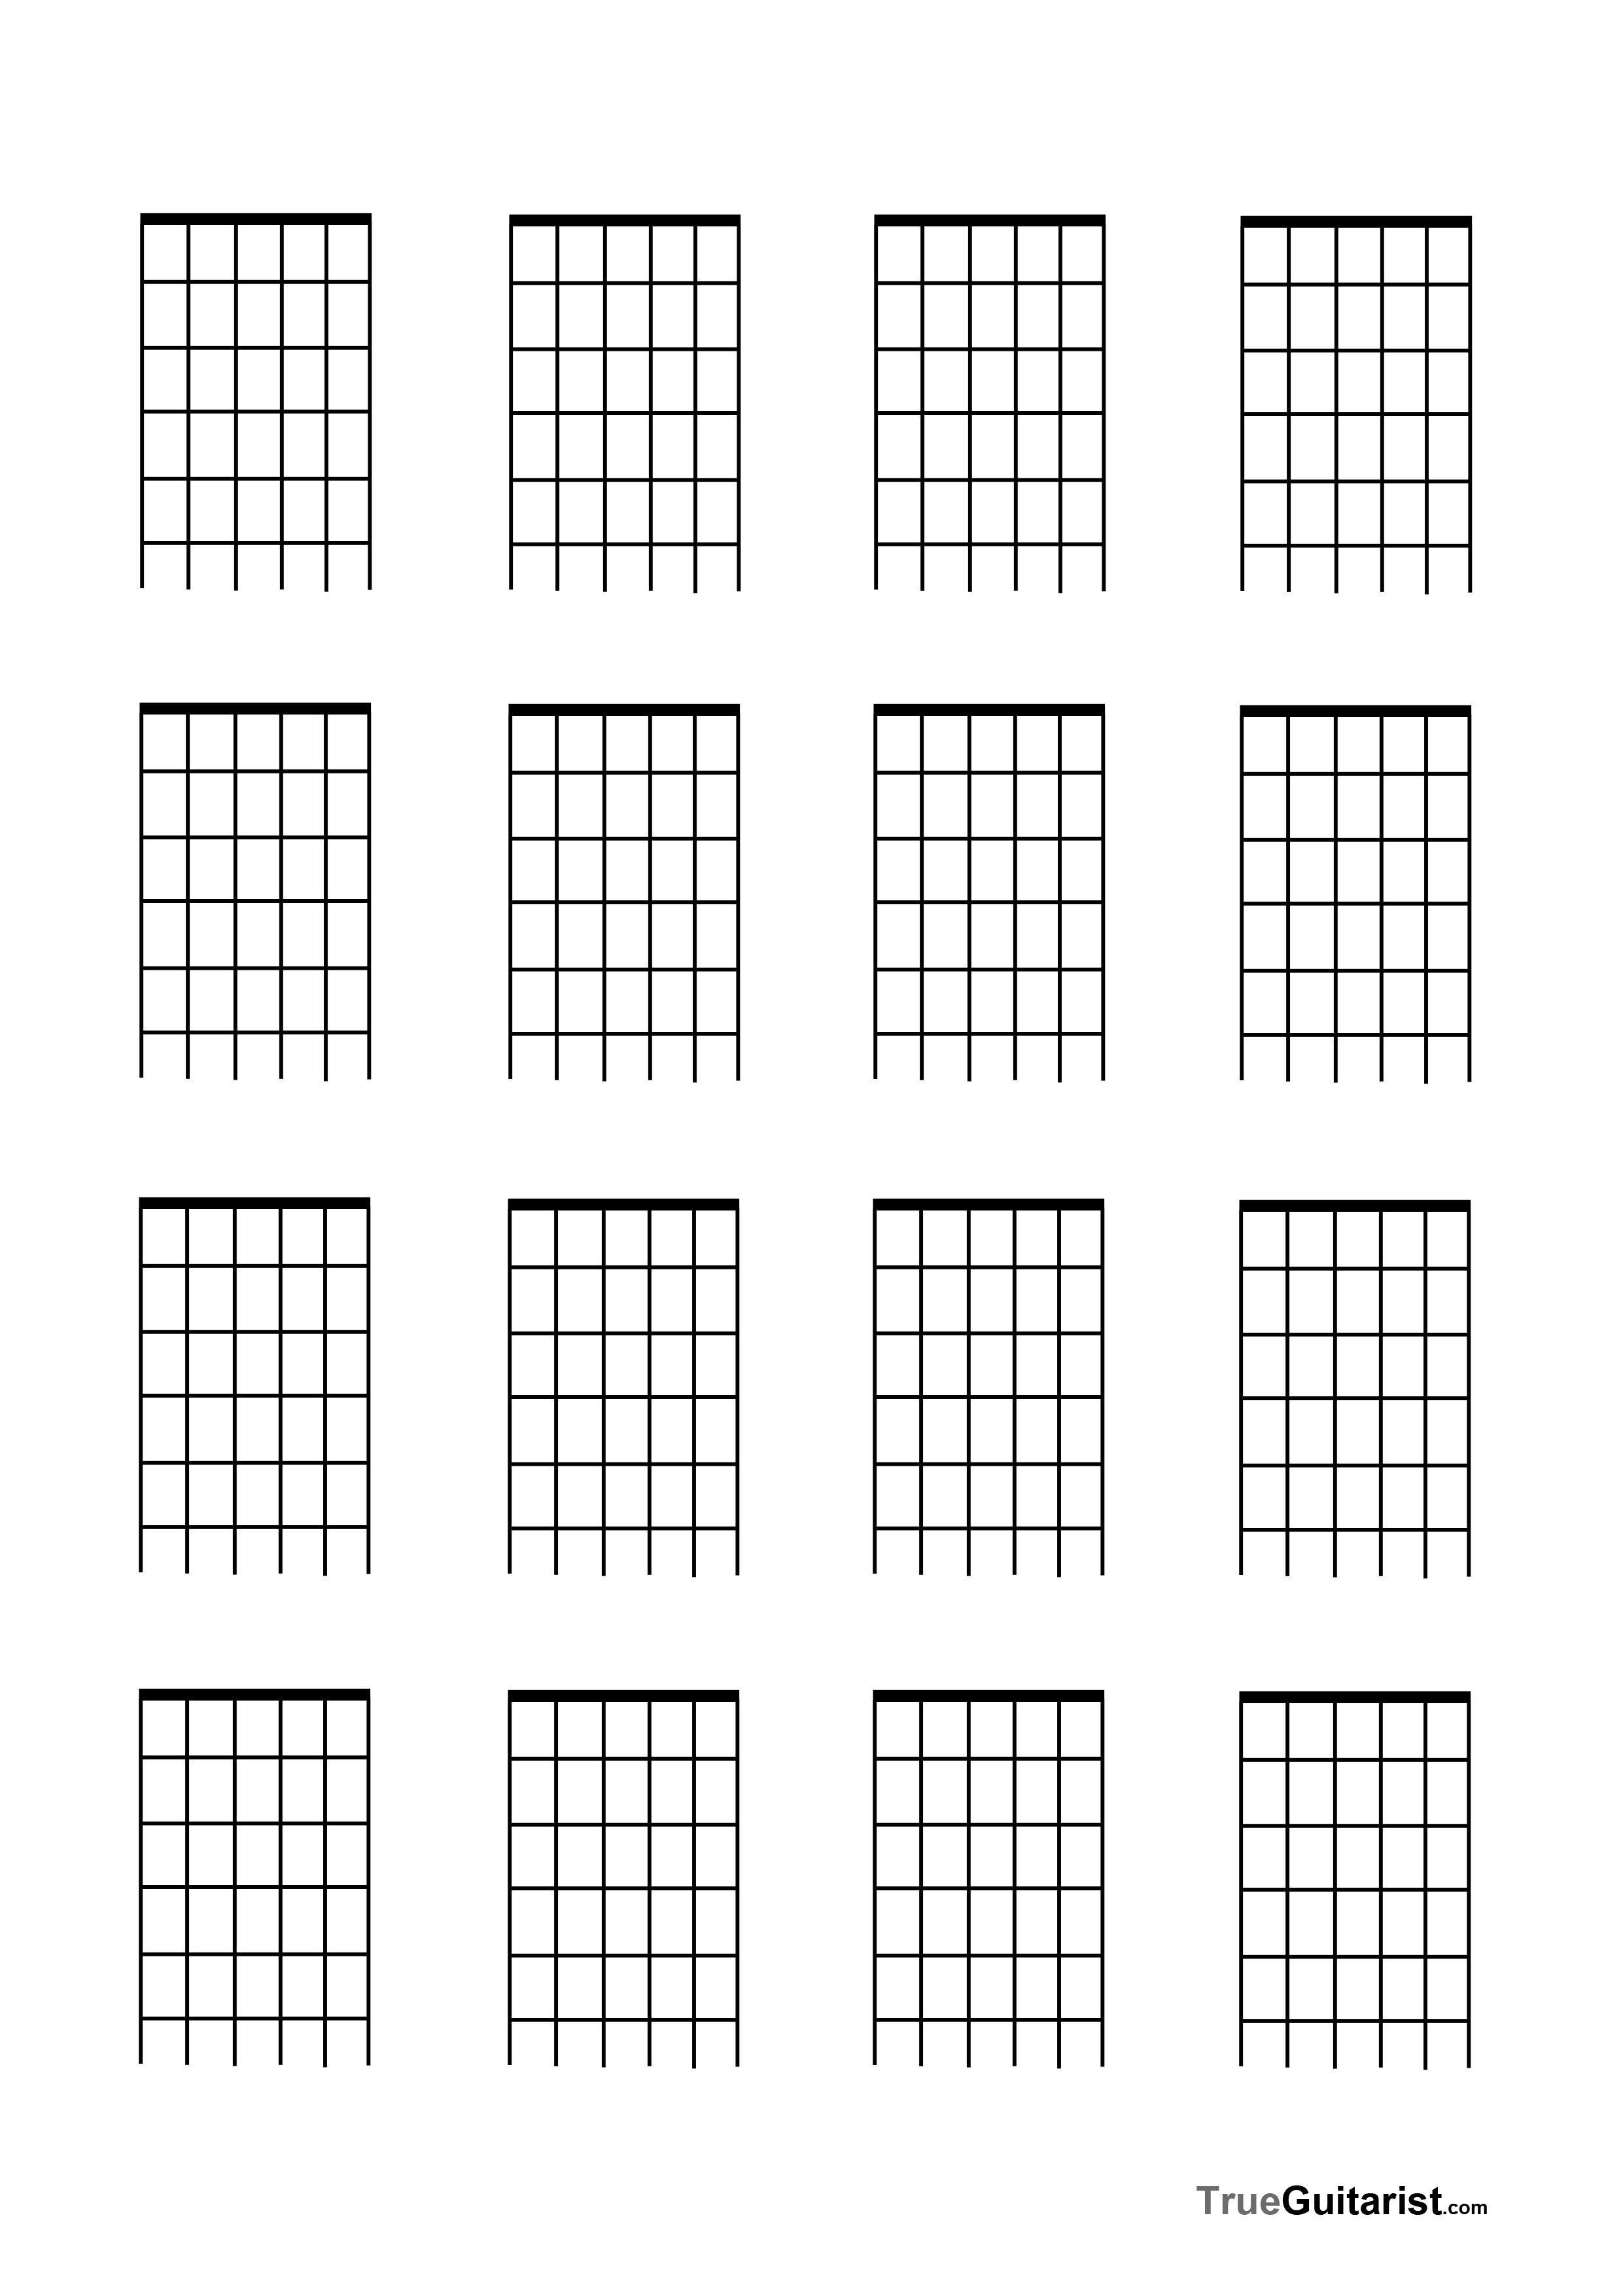 photograph relating to Tablature Paper Printable identify Totally free Printable Guitar Tablature Paper Cost-free Printable Obtain